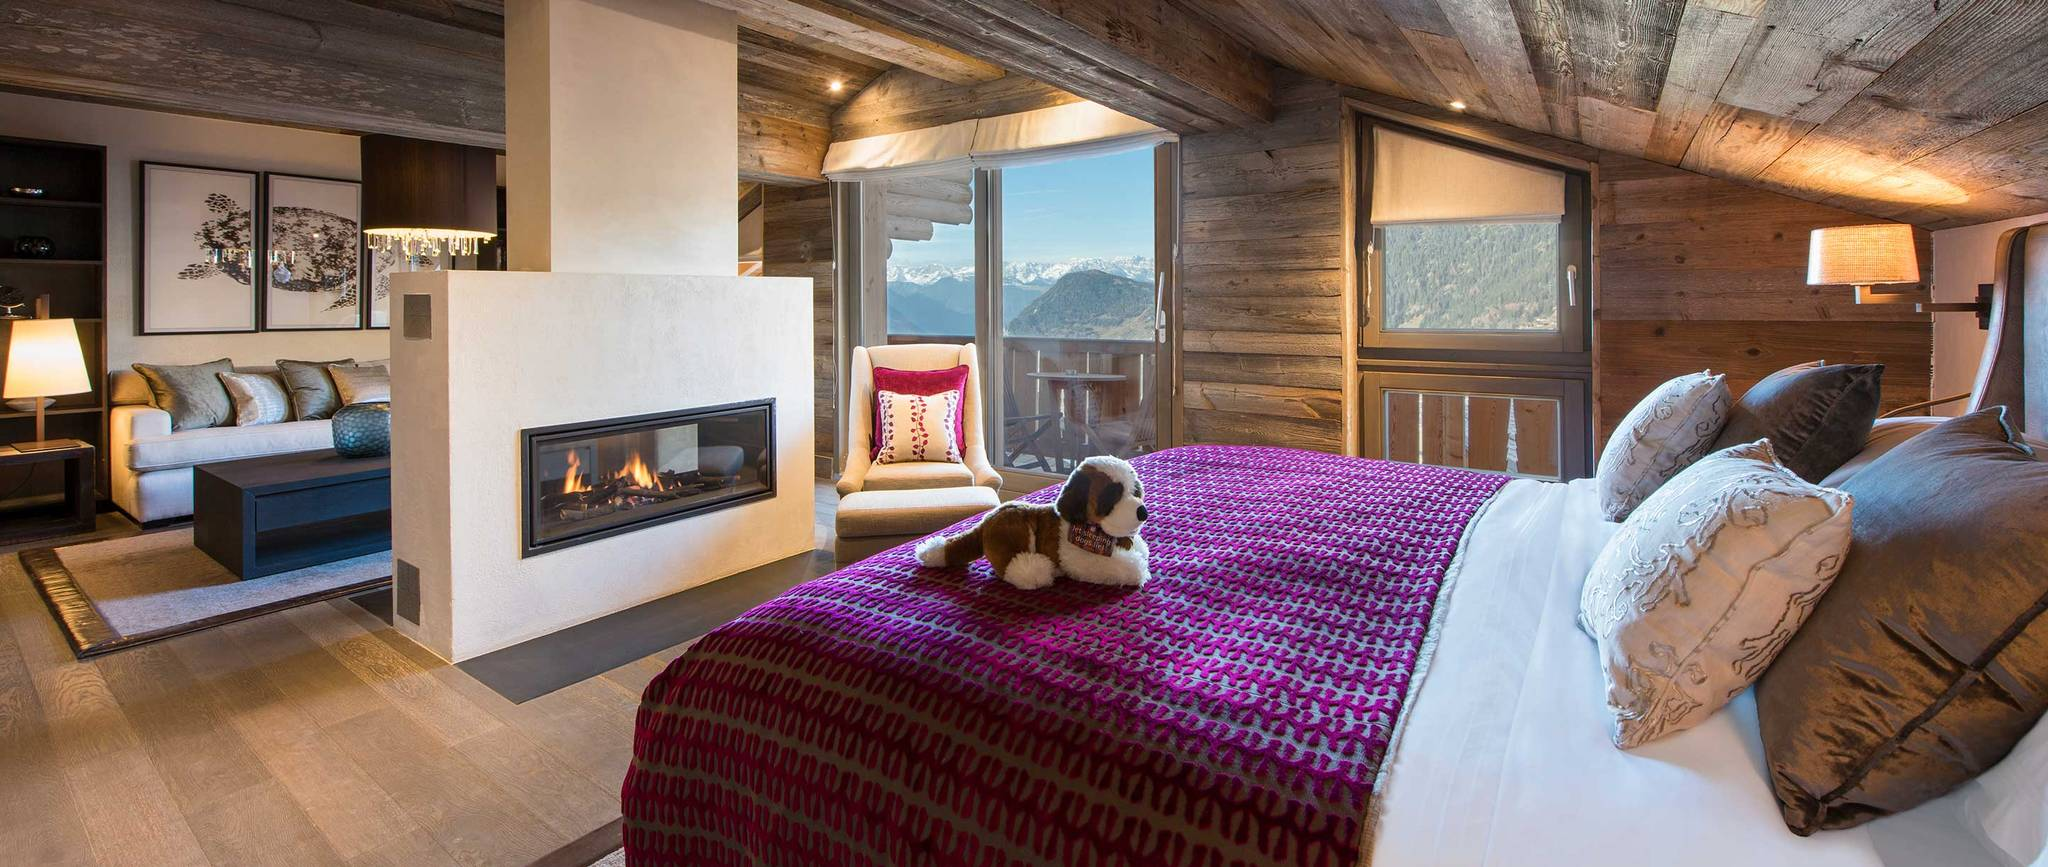 bedroom with toy puppy on bed and fireplace